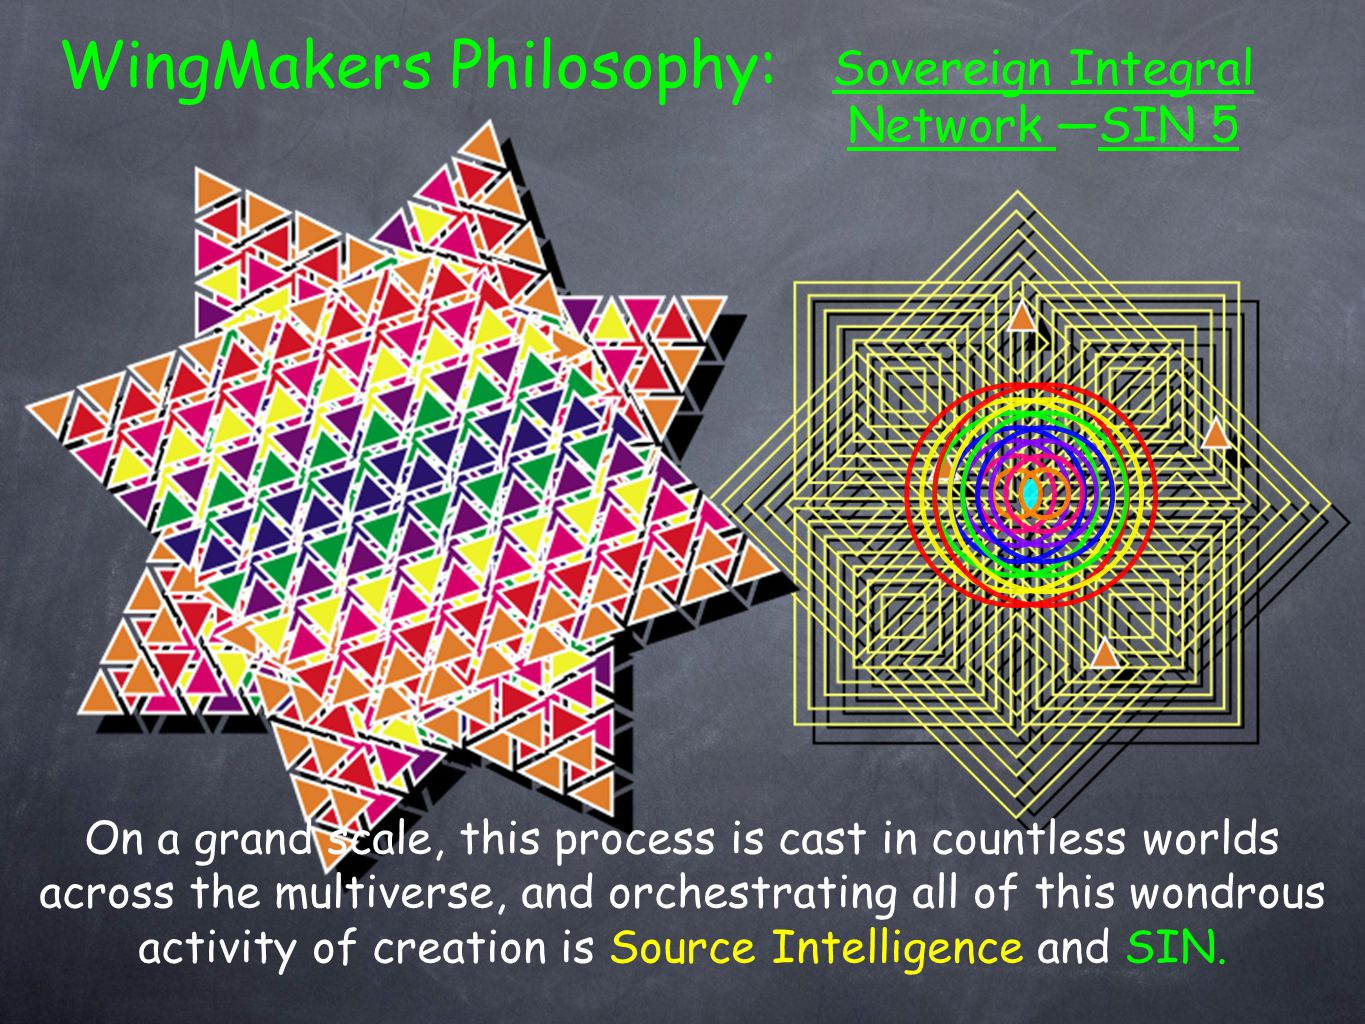 Sovereign Integral Network —SIN 5 WingMakers Philosophy: On a grand scale, this process is cast in countless worlds across the multiverse, and orchestrating all of this wondrous activity of creation is Source Intelligence and SIN.